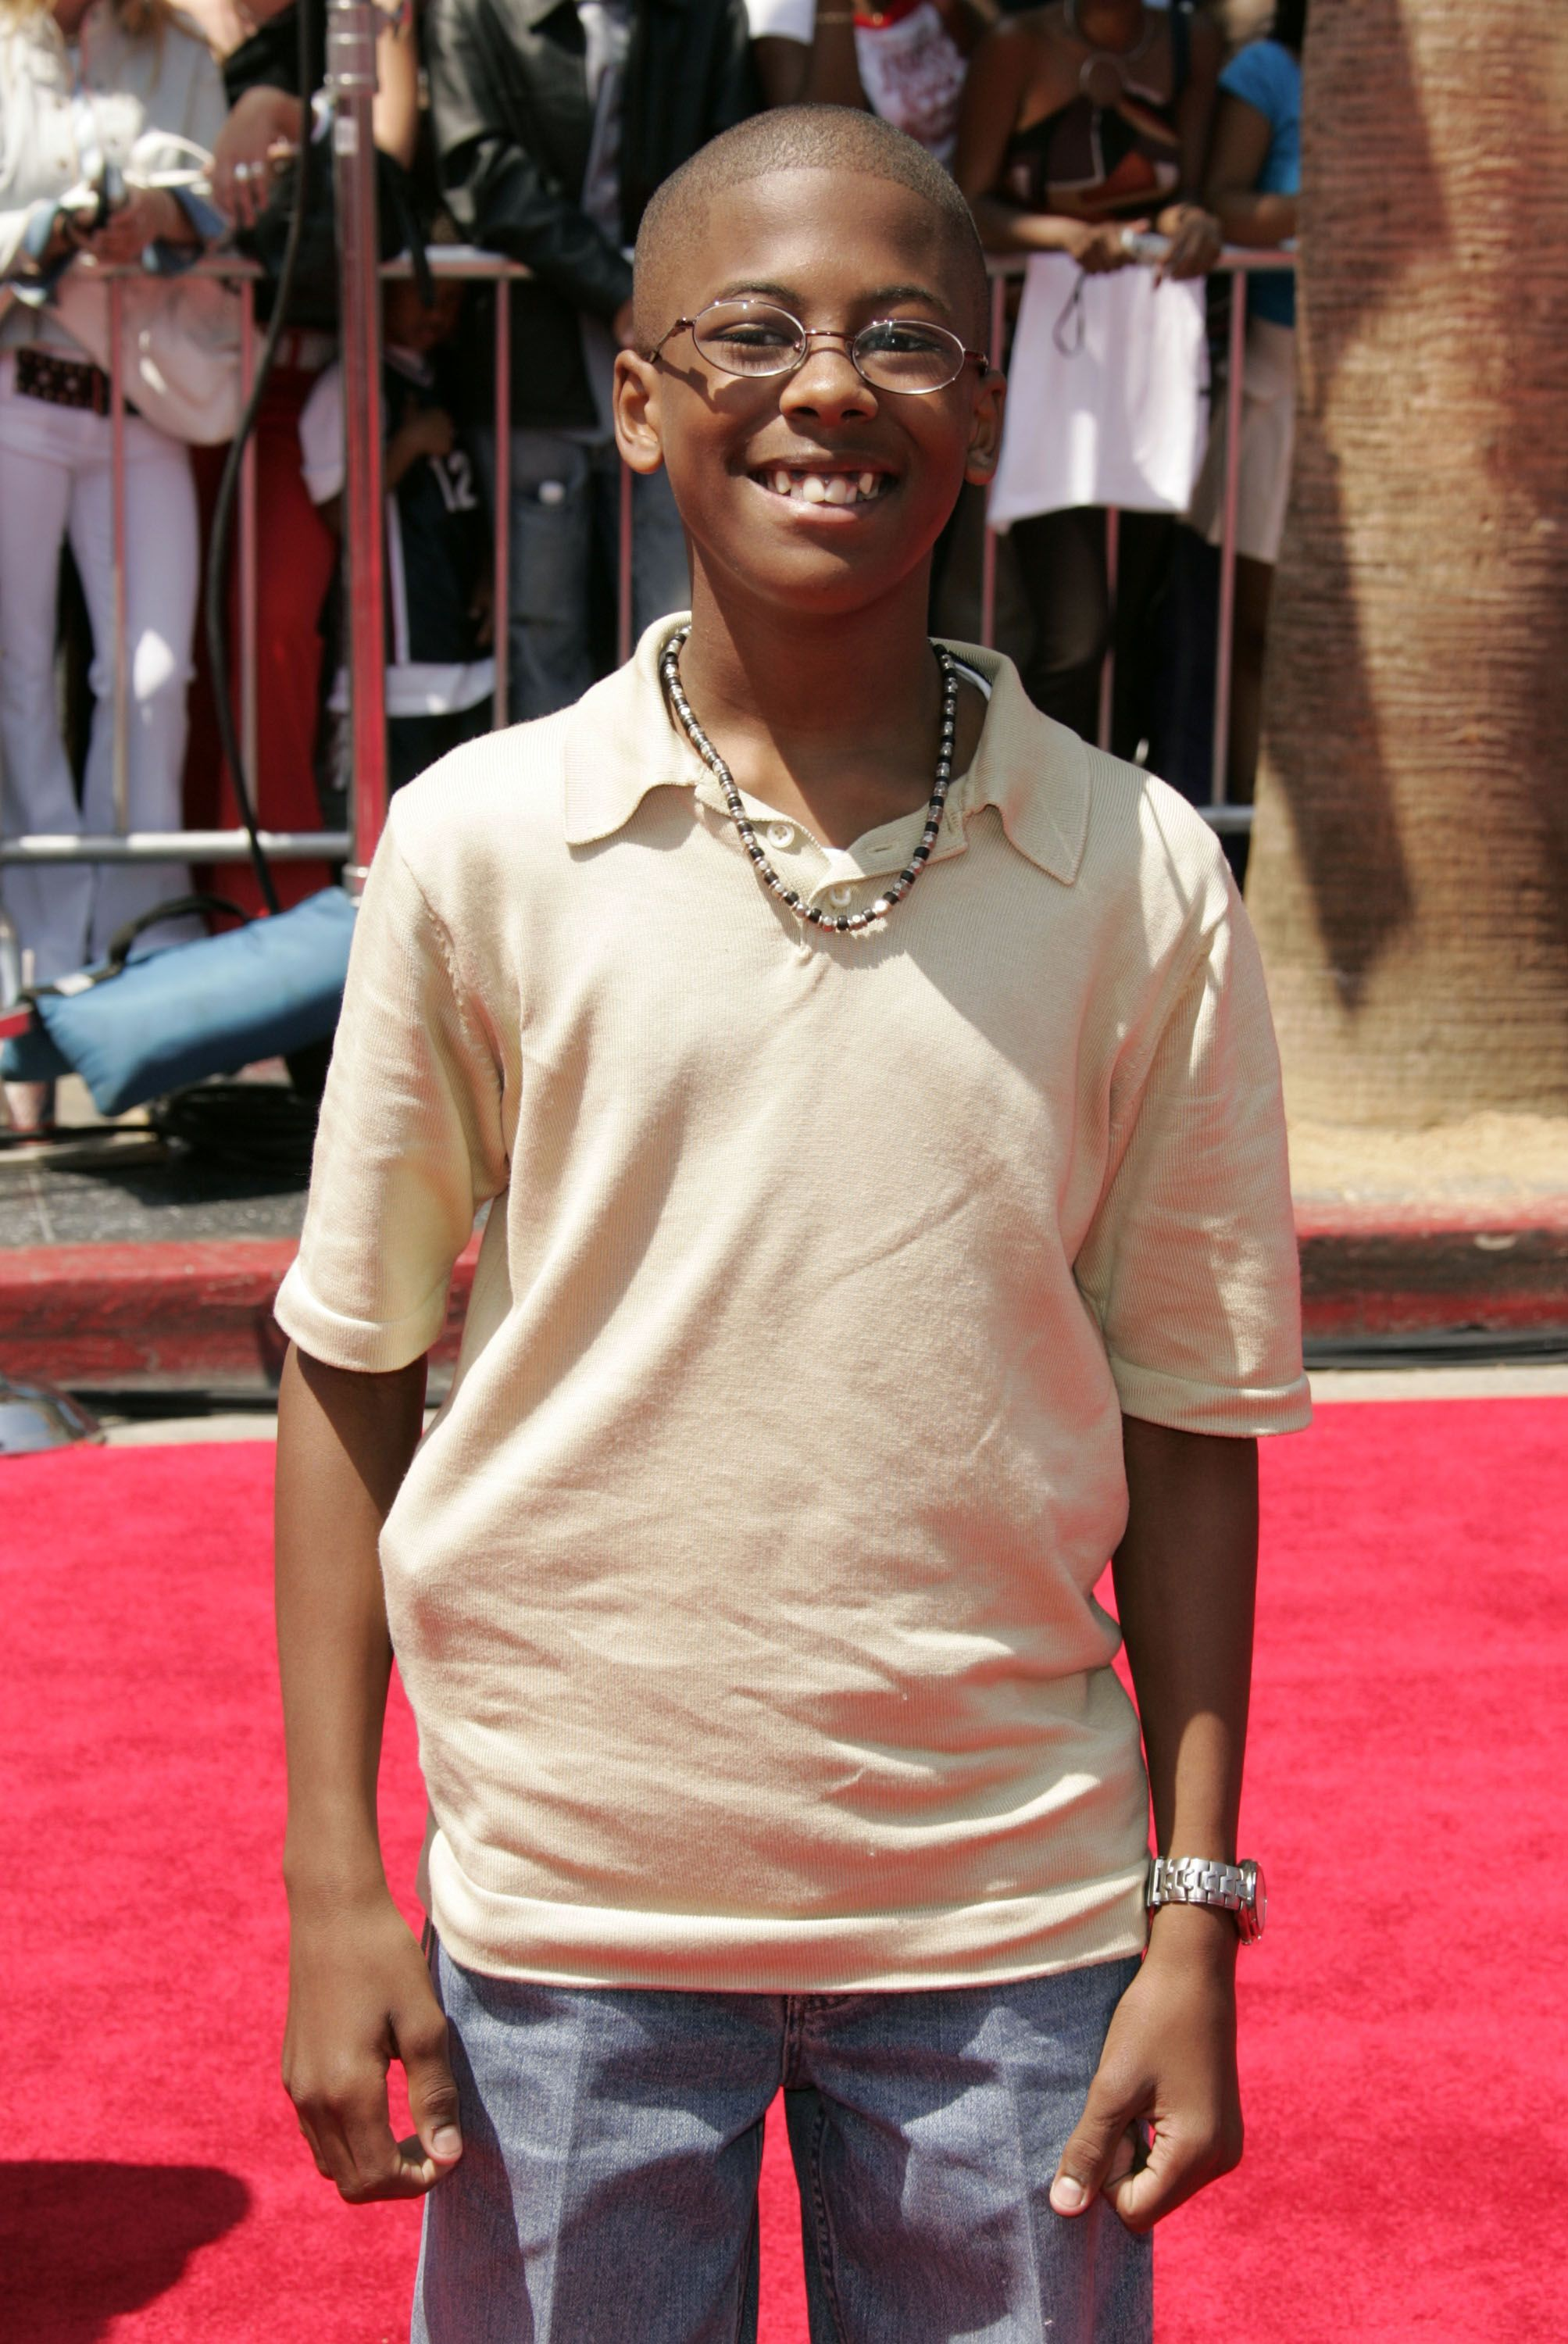 Jeremy Suarez at the 4th Annual BET Awards - Arrivals at Kodak Theatre in Hollywood on June 29, 2004 | Photo: Getty Images